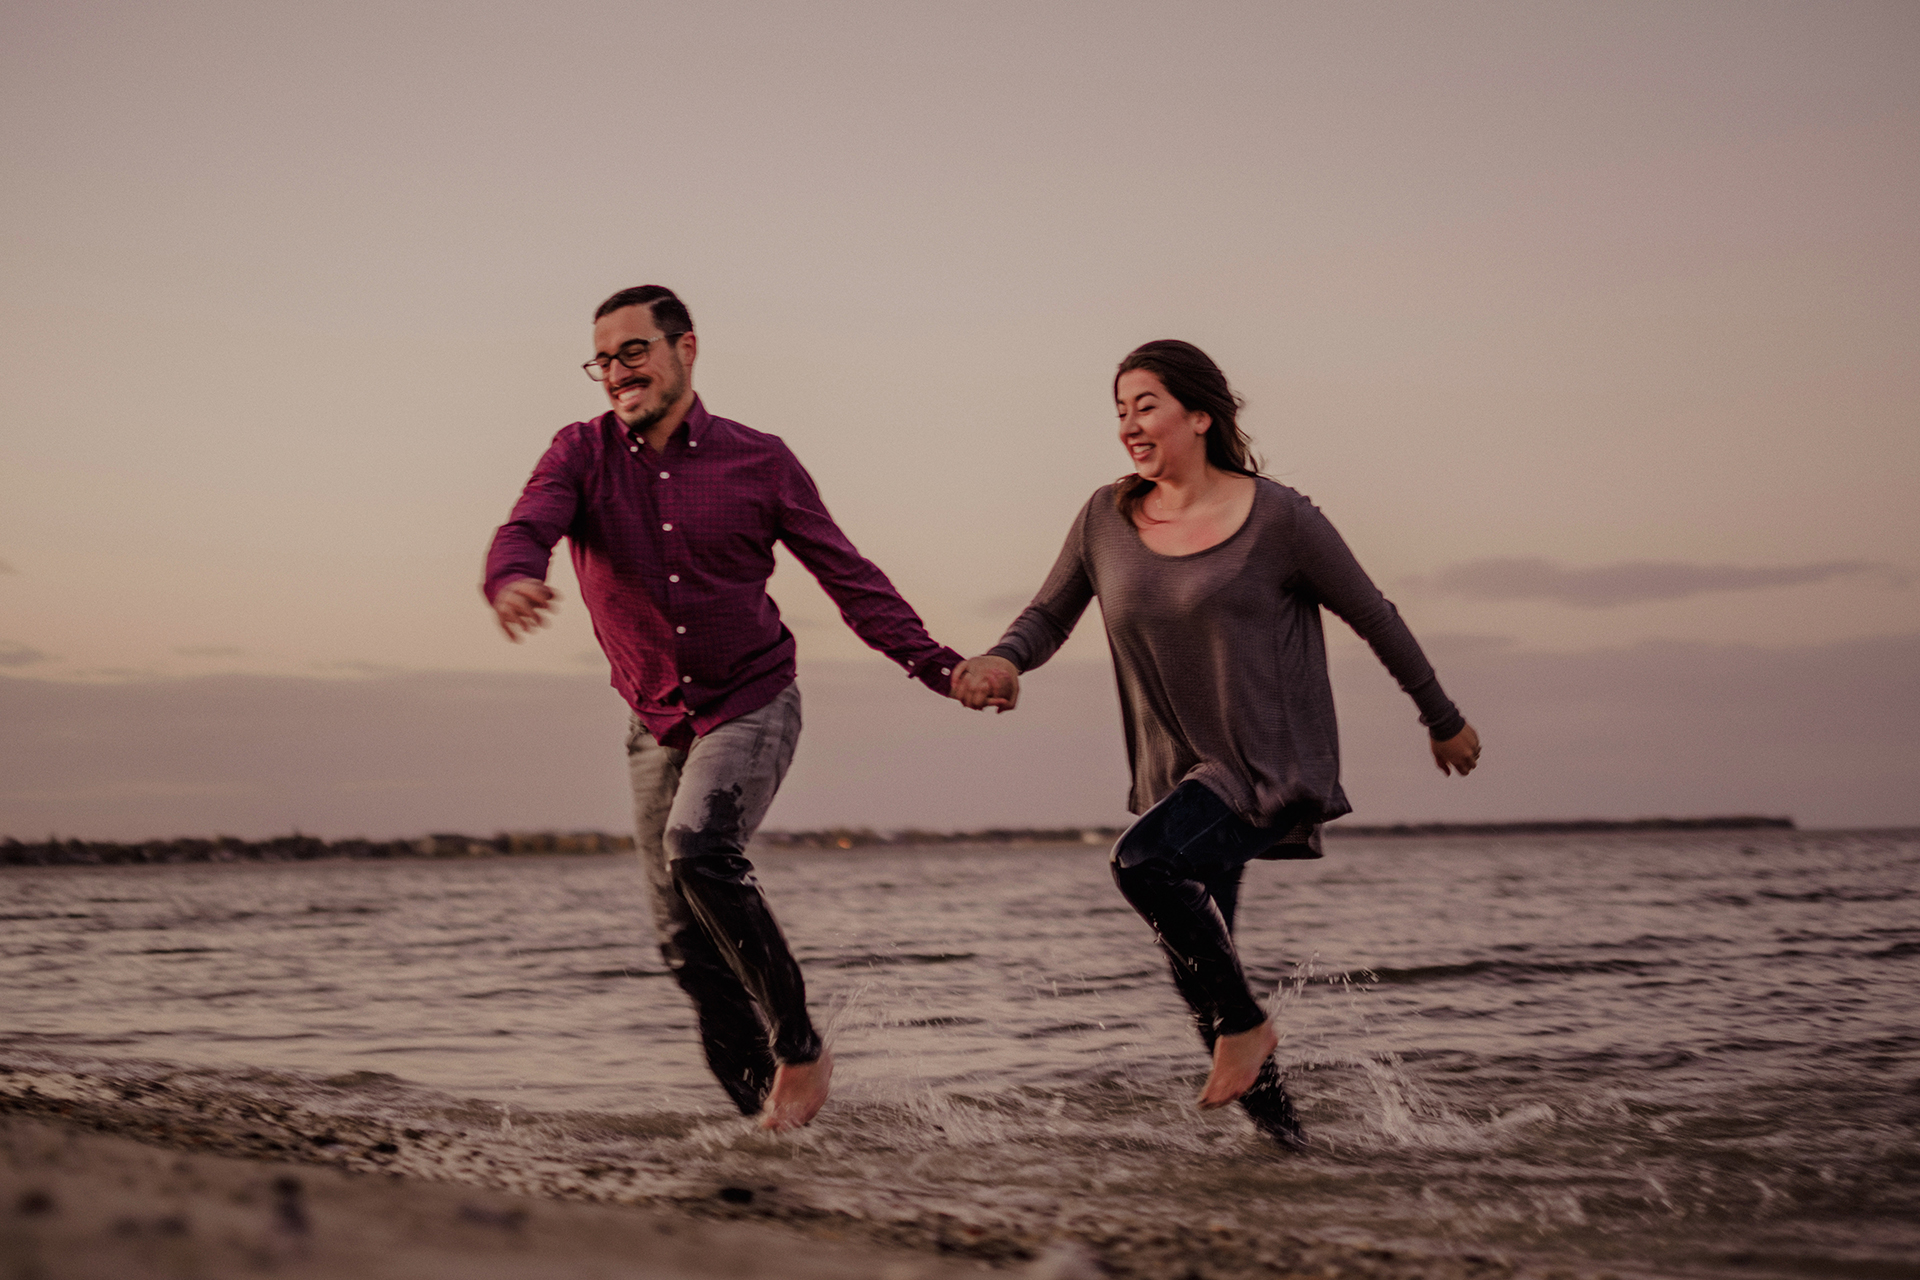 0024-gimli-manitoba-lake-beach-engagement-photographer-daniela-steven.jpg